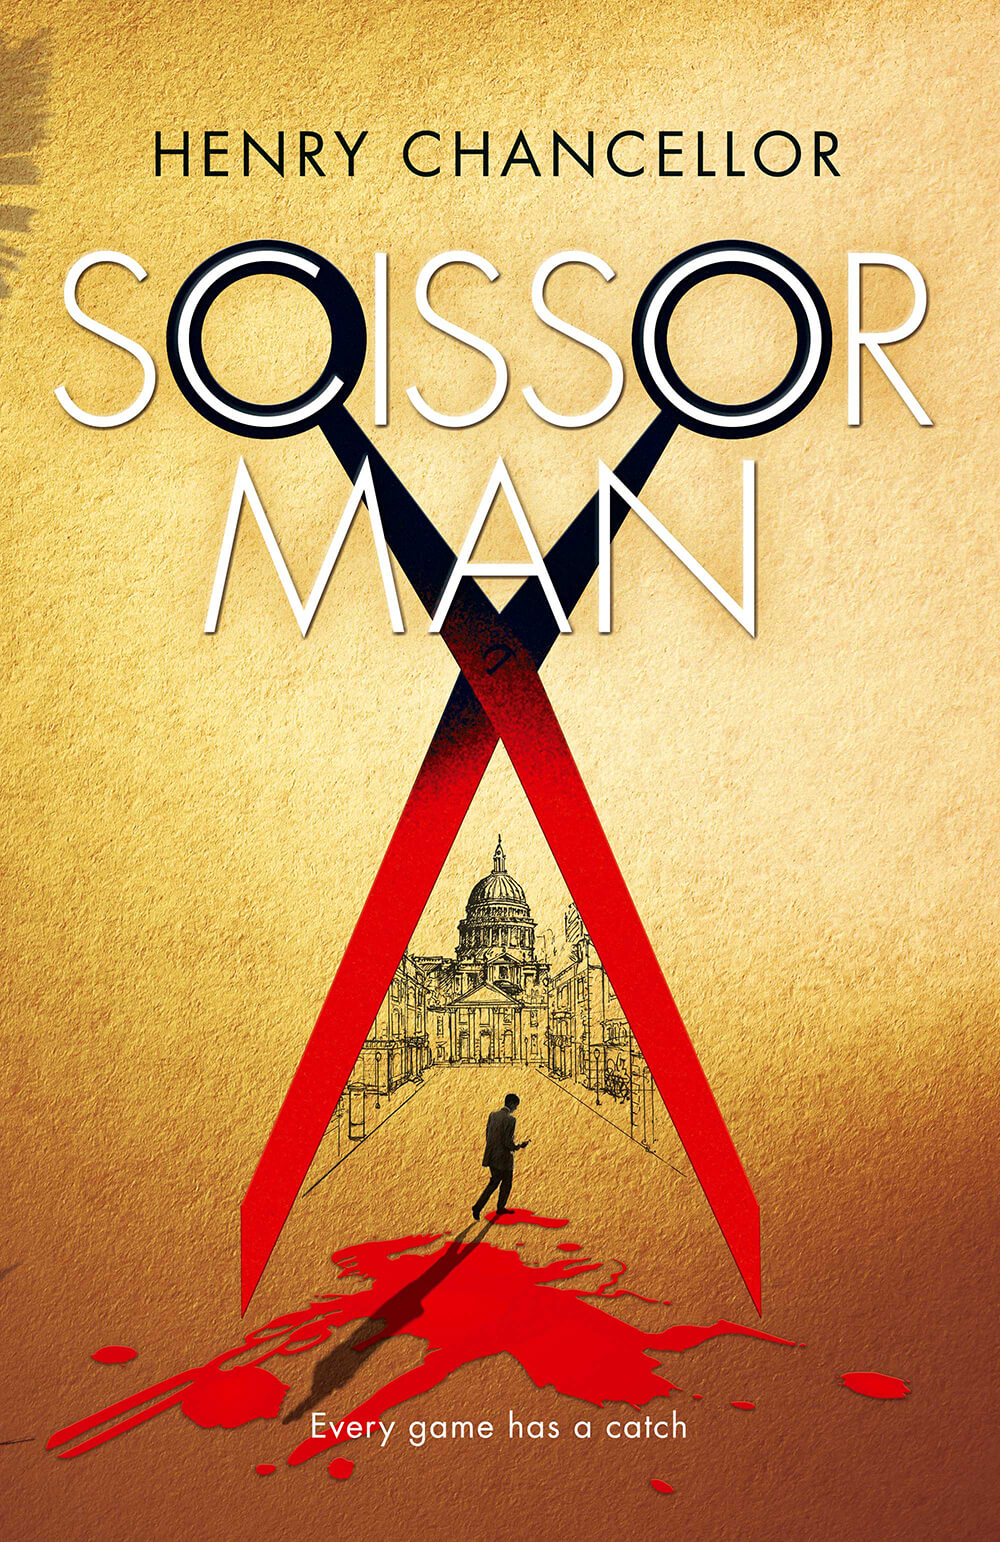 Scissorman bookcover cover design in yellow